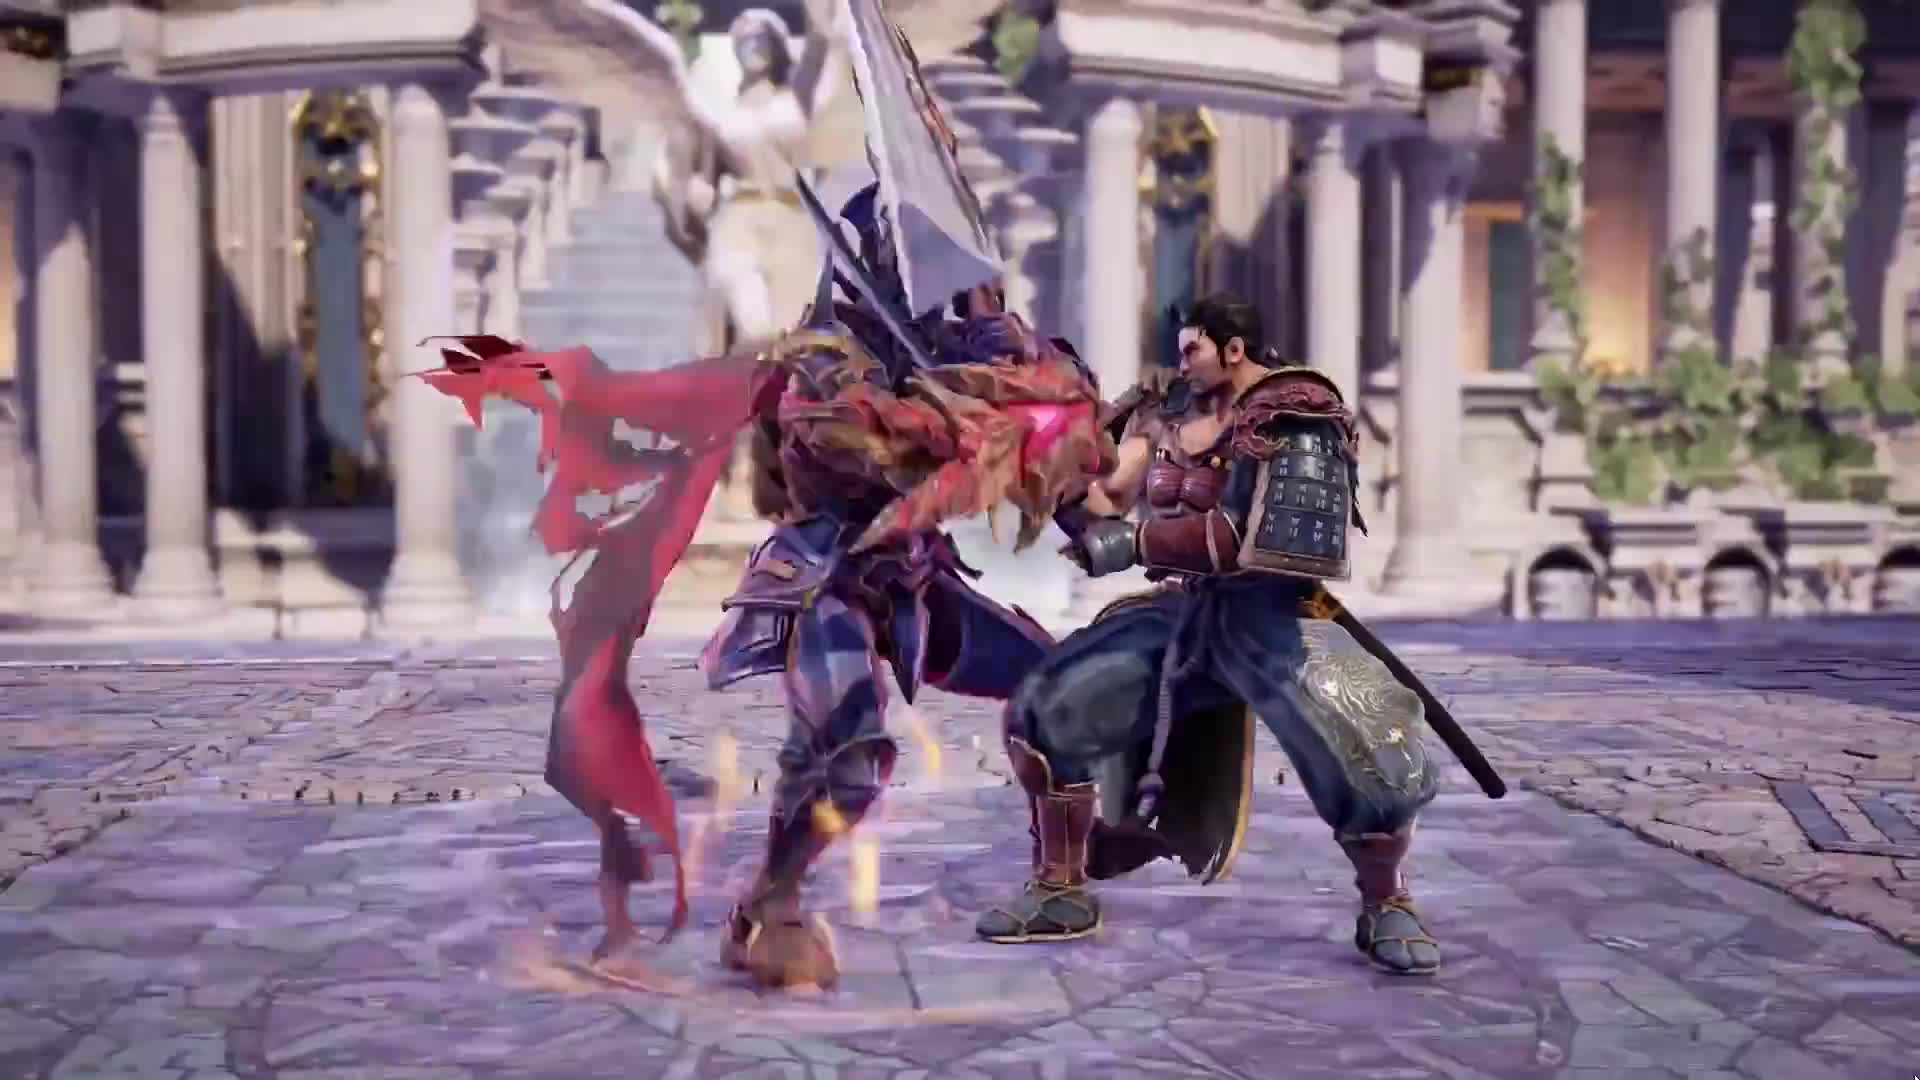 Soul Calibur 6 Characters Gifs Search | Search & Share on Homdor